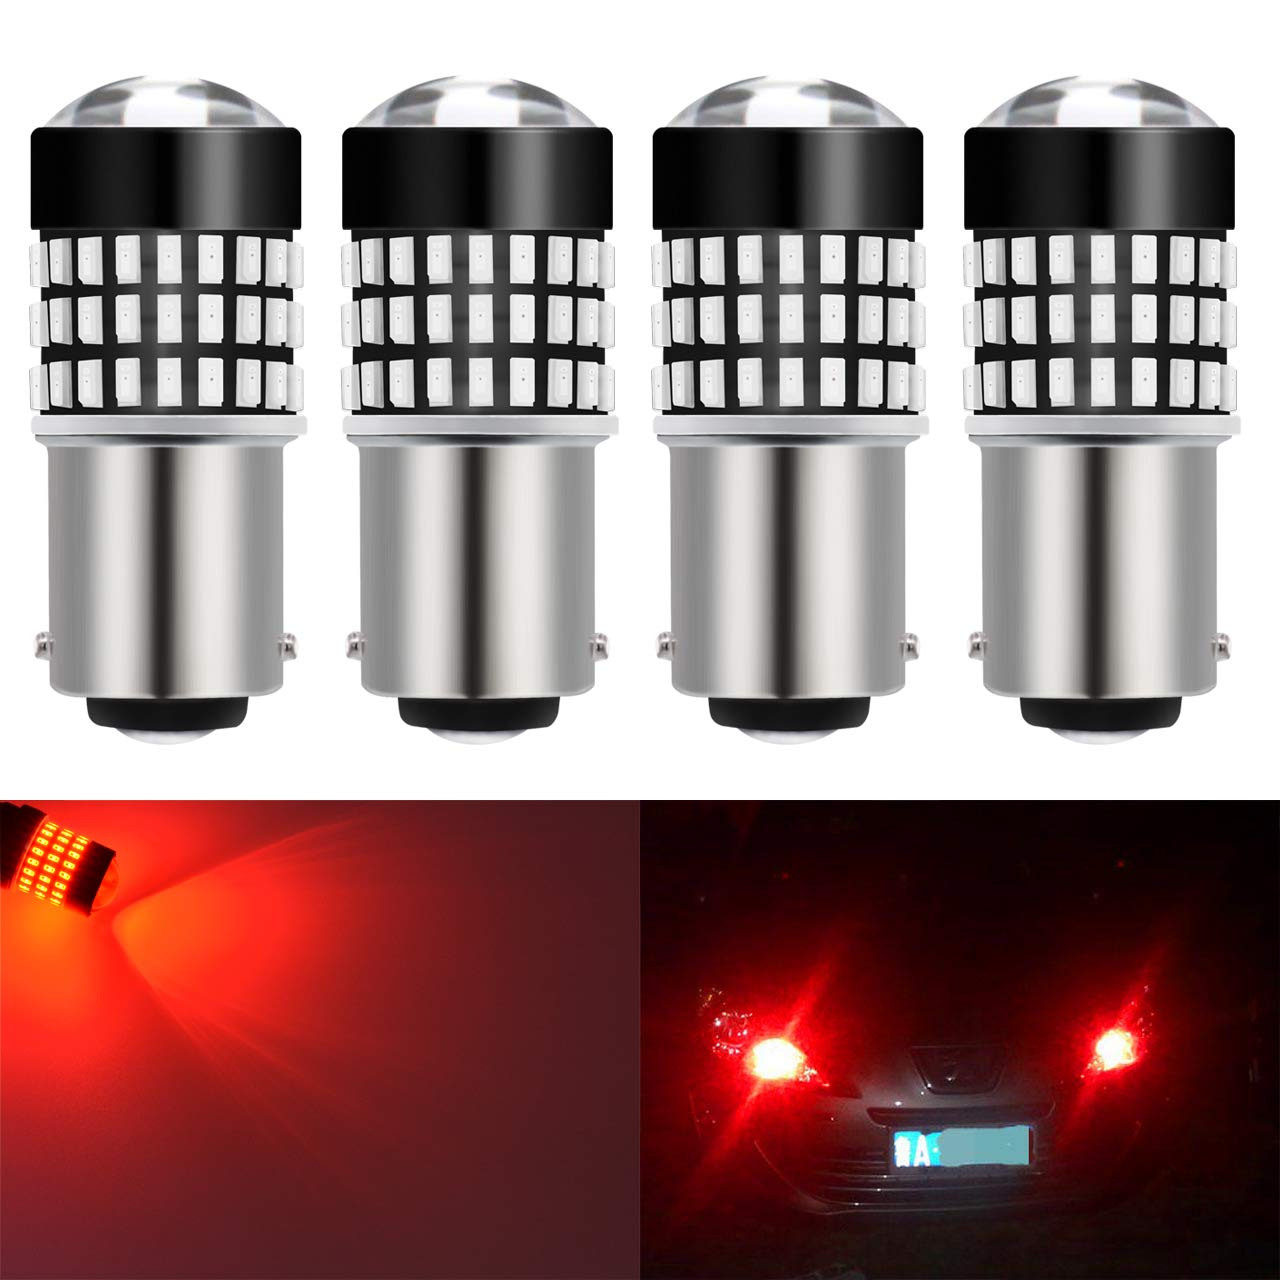 KaTur 2pcs 900 Lumens 7443 7444NA 7440 7440NA 992 Base Super Bright 3014 78SMD Lens LED Bulbs Brake Turn Signal Tail Backup Reverse Brake Light Lamp Red 12V 4W 2AM-CL-374-7443-Red